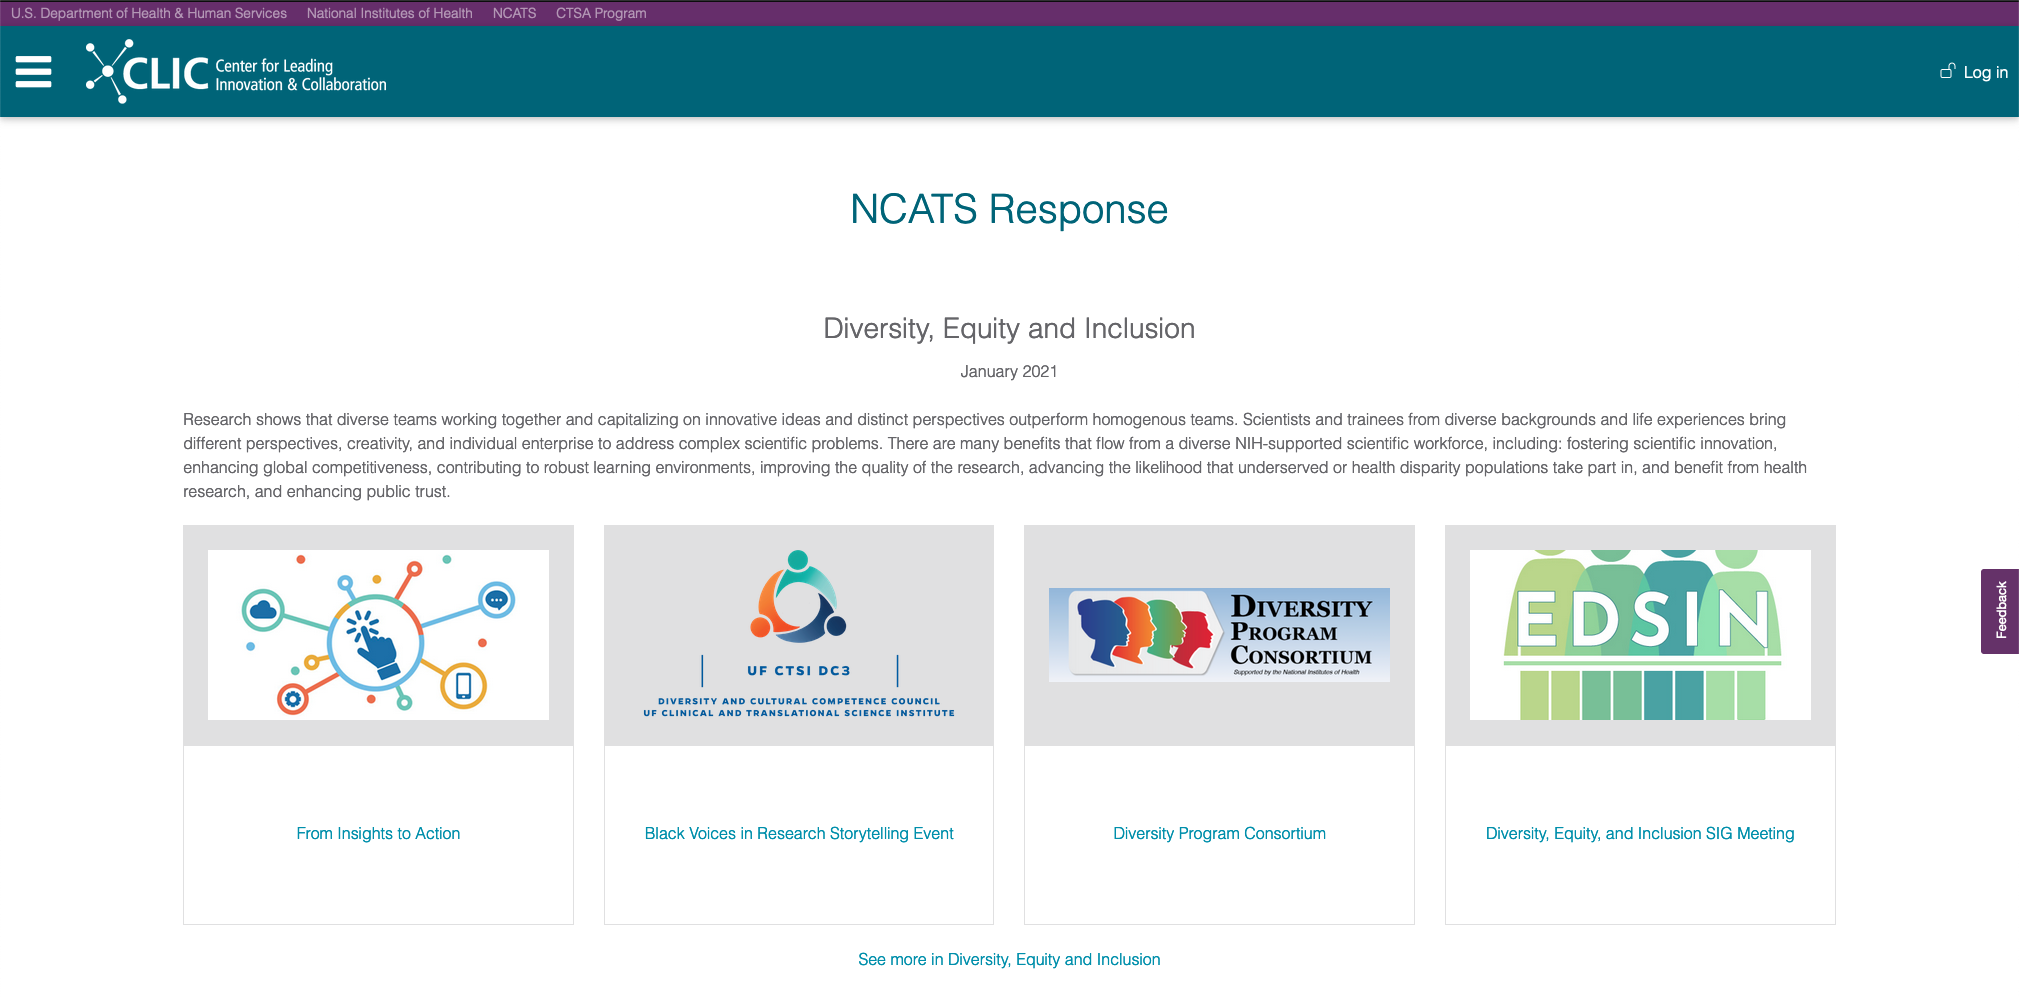 Screenshot of the NCATS Response page, showing the DEI section